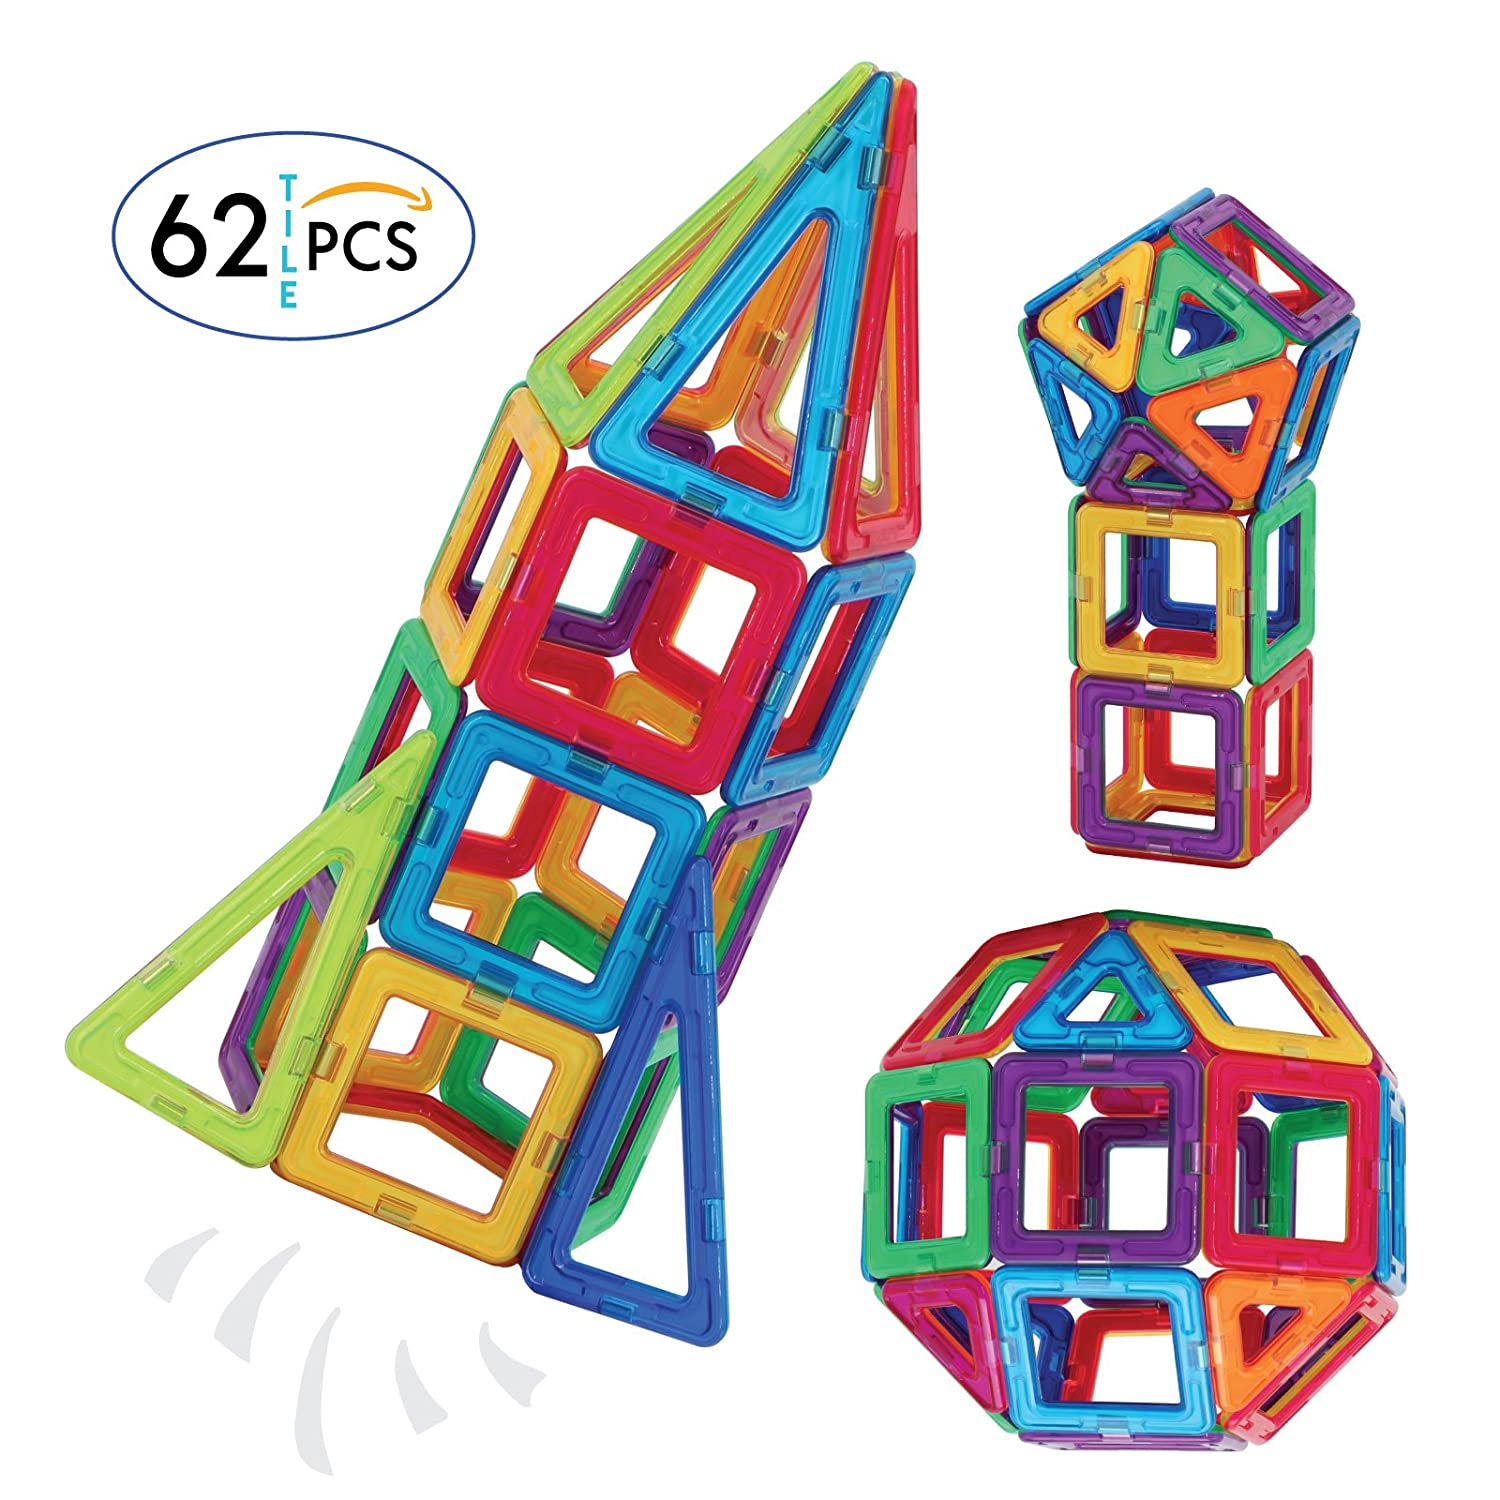 Amazon Star Flex Create Puzzle and Sunflower Blocks